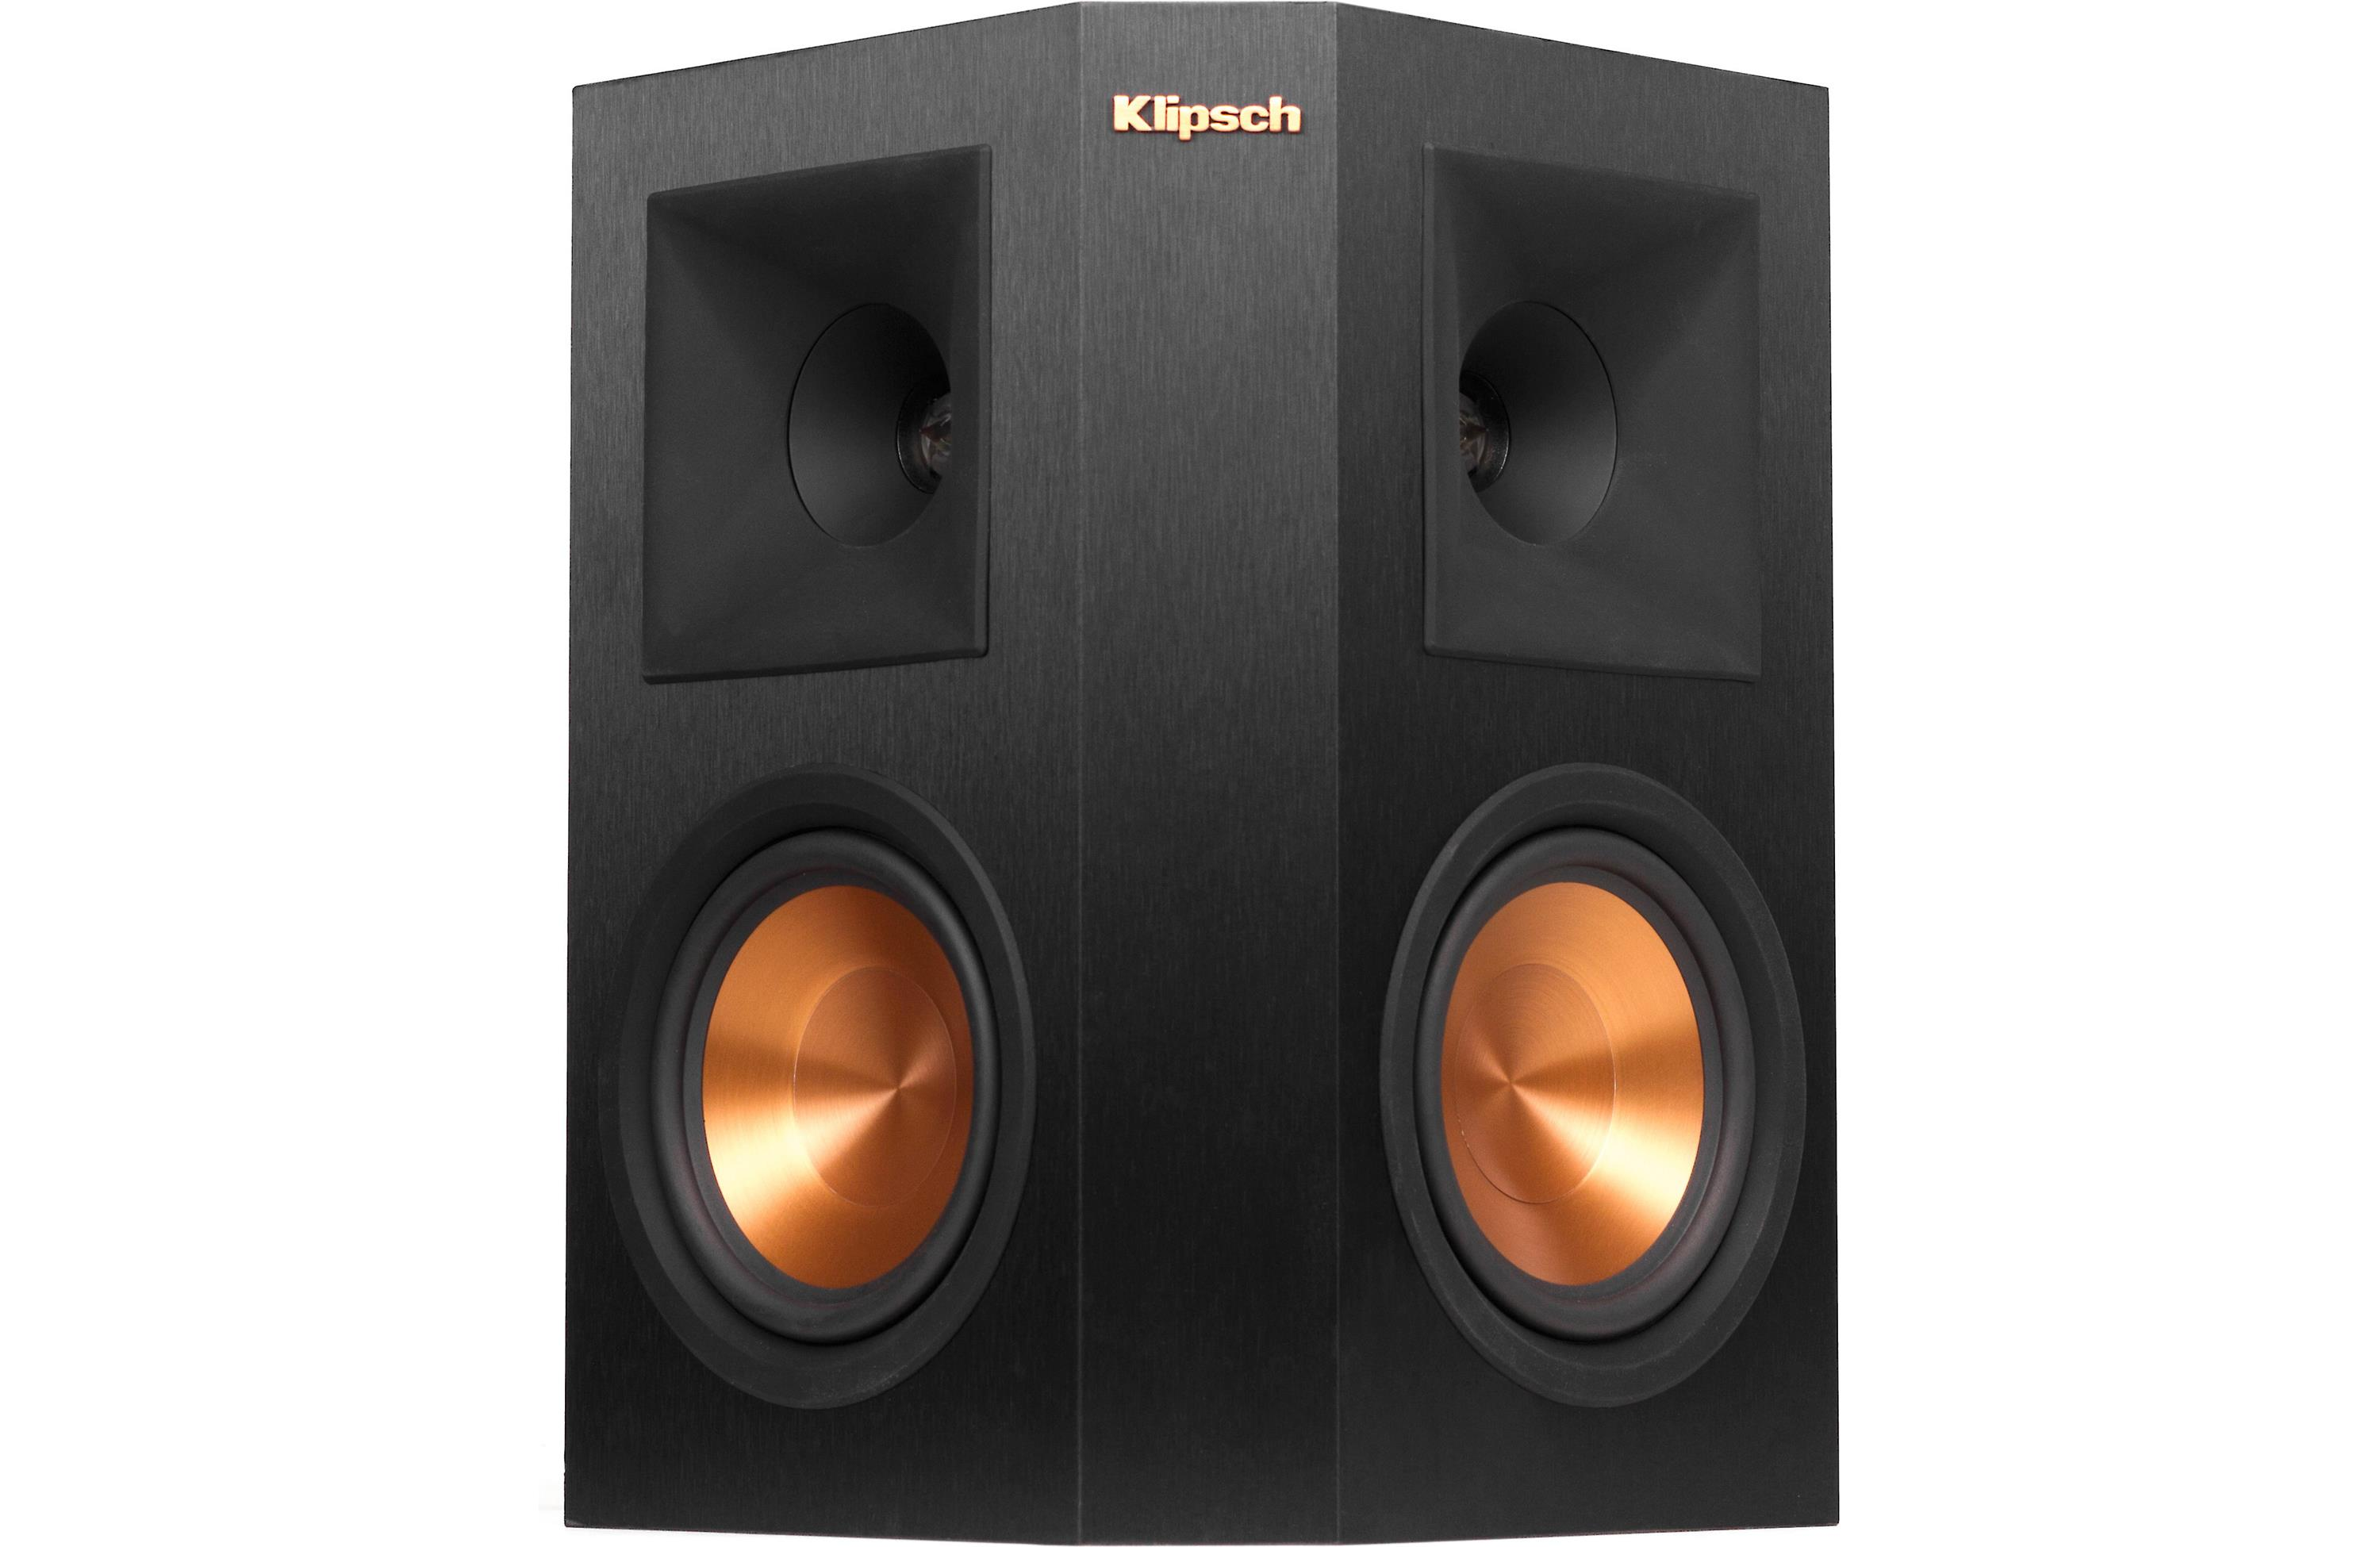 Klipsch RP-250S Surround Sound Speaker